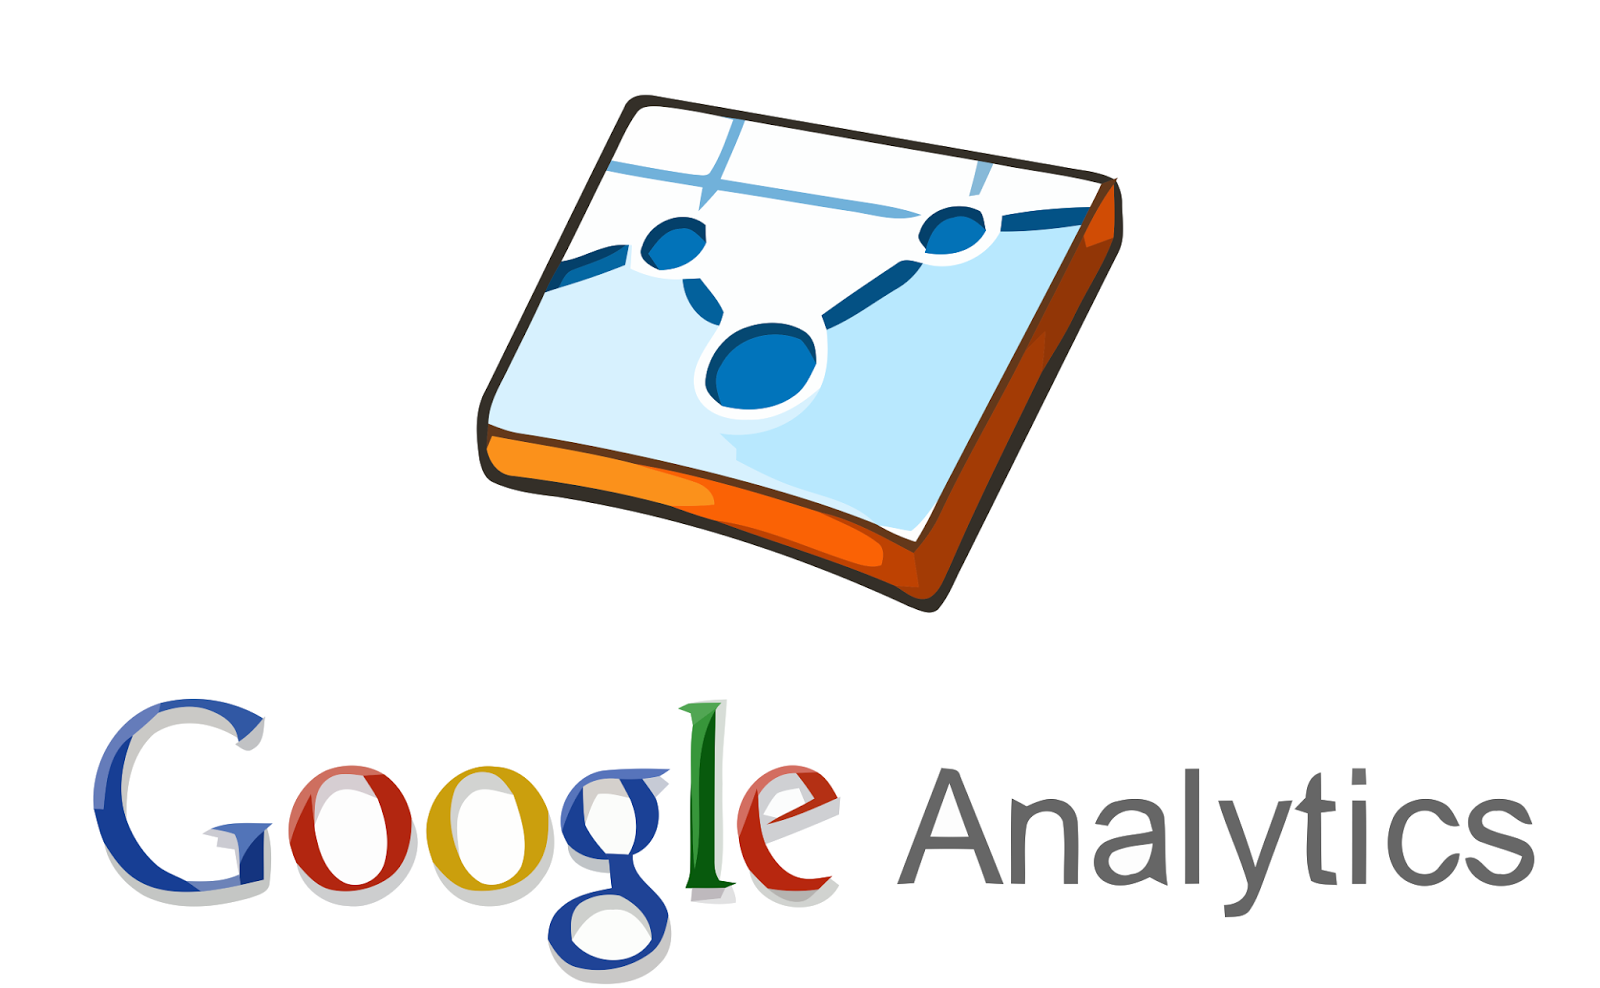 Google Analytics - Tool for Website statistical analytics